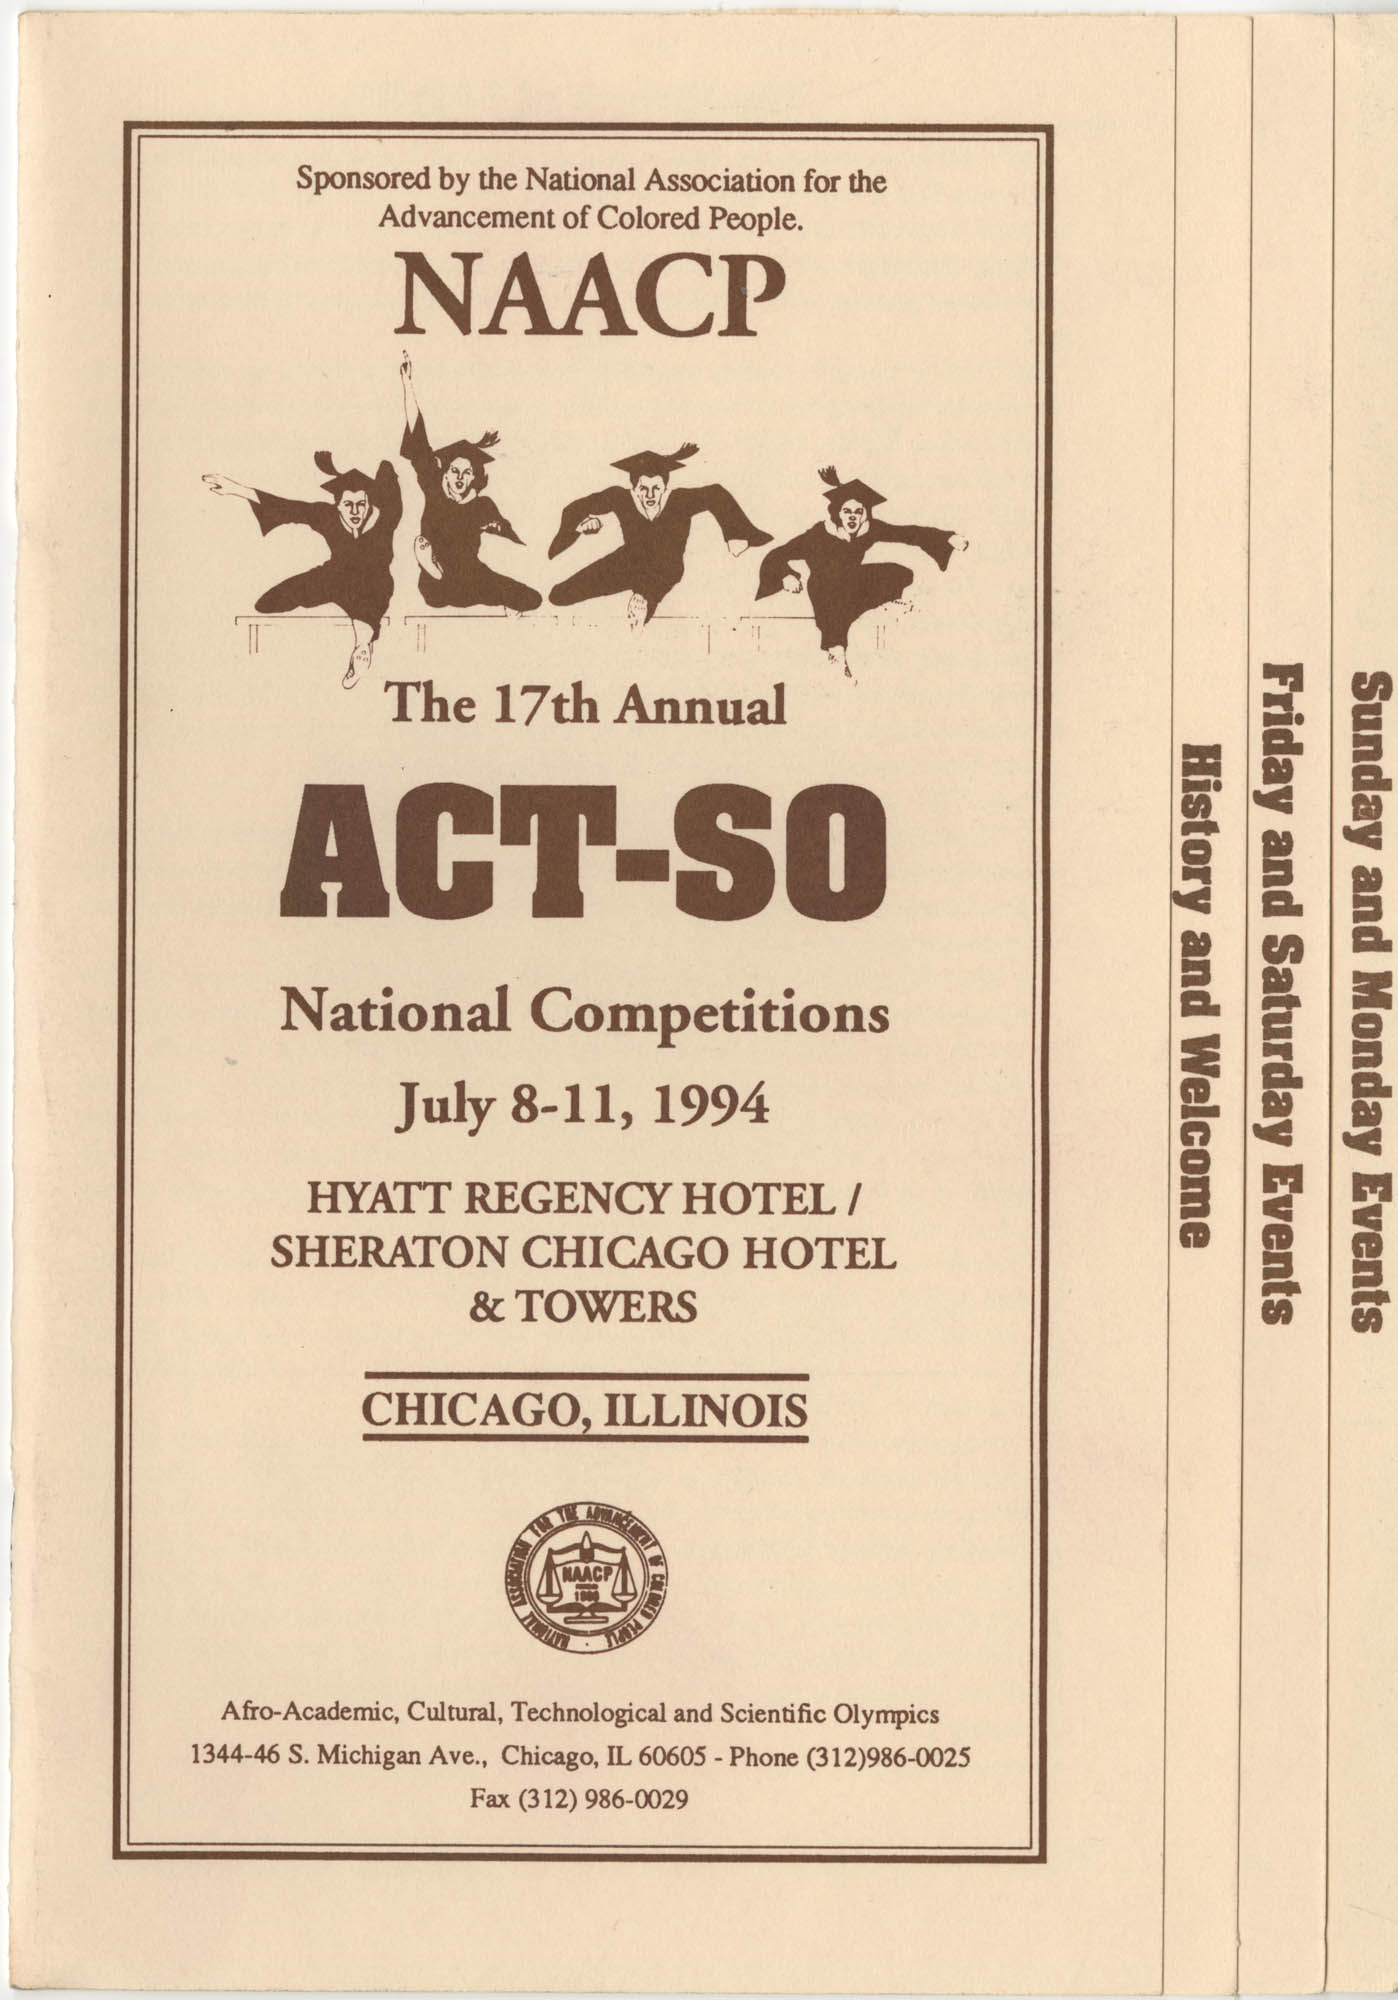 NAACP 17th Annual ACT-SO, July 8-11, 1994, Cover